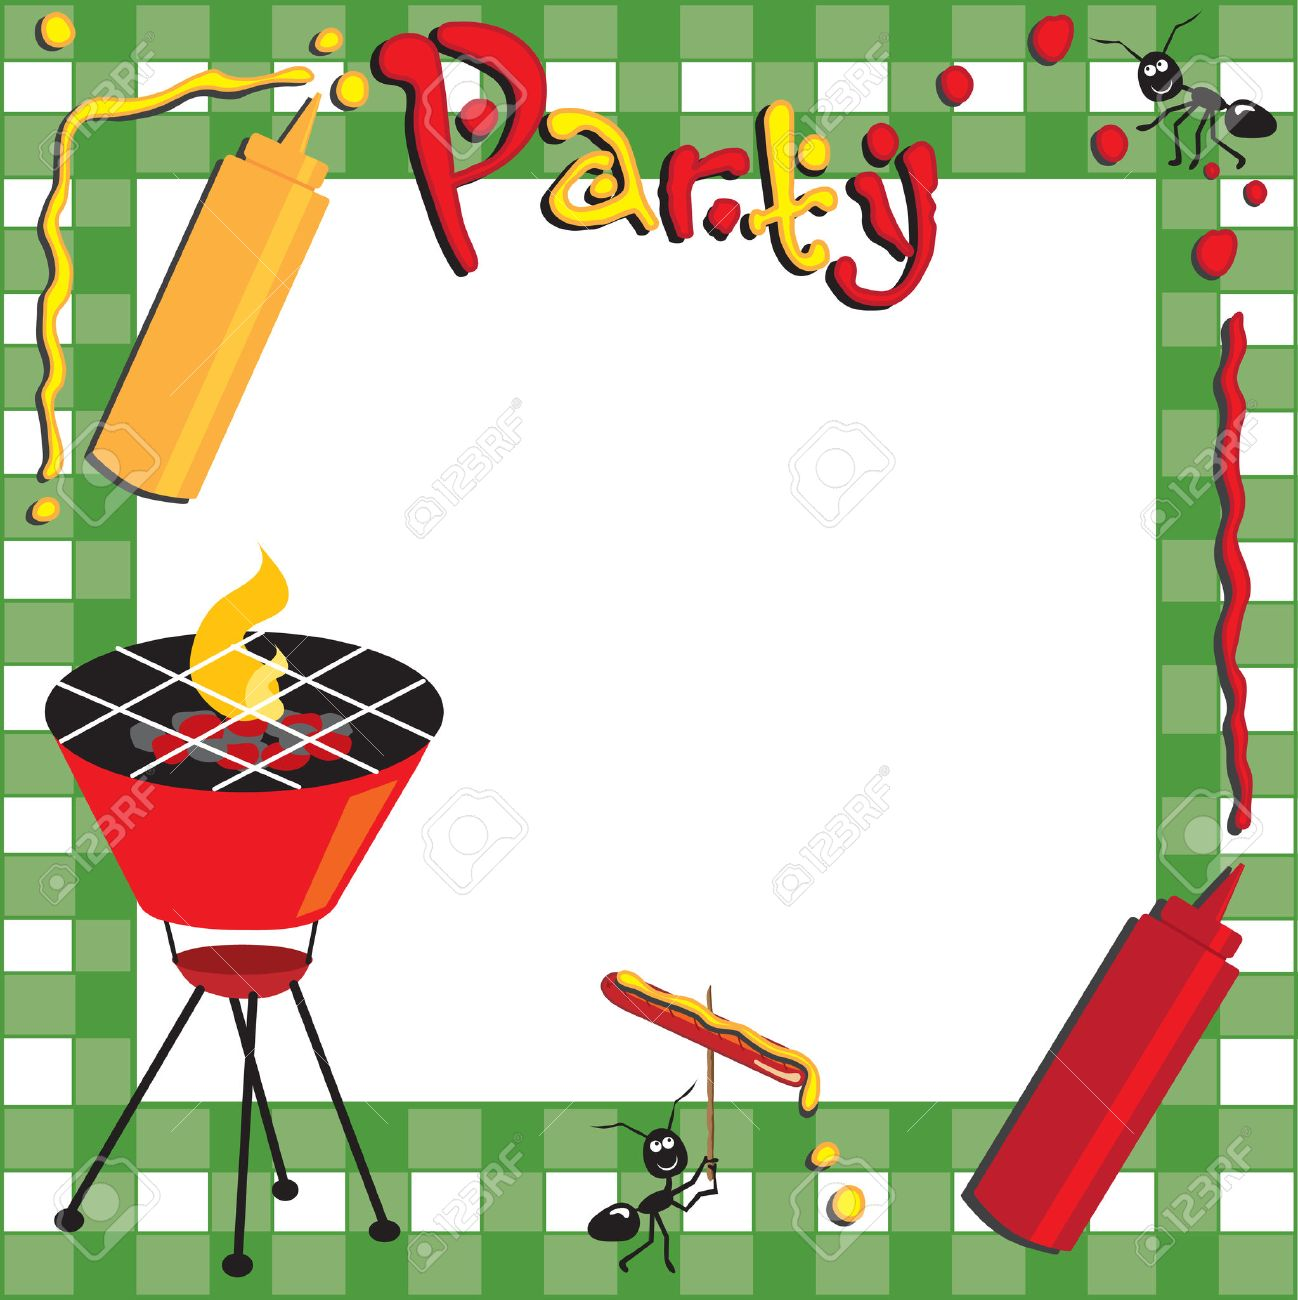 Cookout border clipart hot dog cookout invite stock vector art - Picnic And Bbq Invitation Stock Vector 6919447